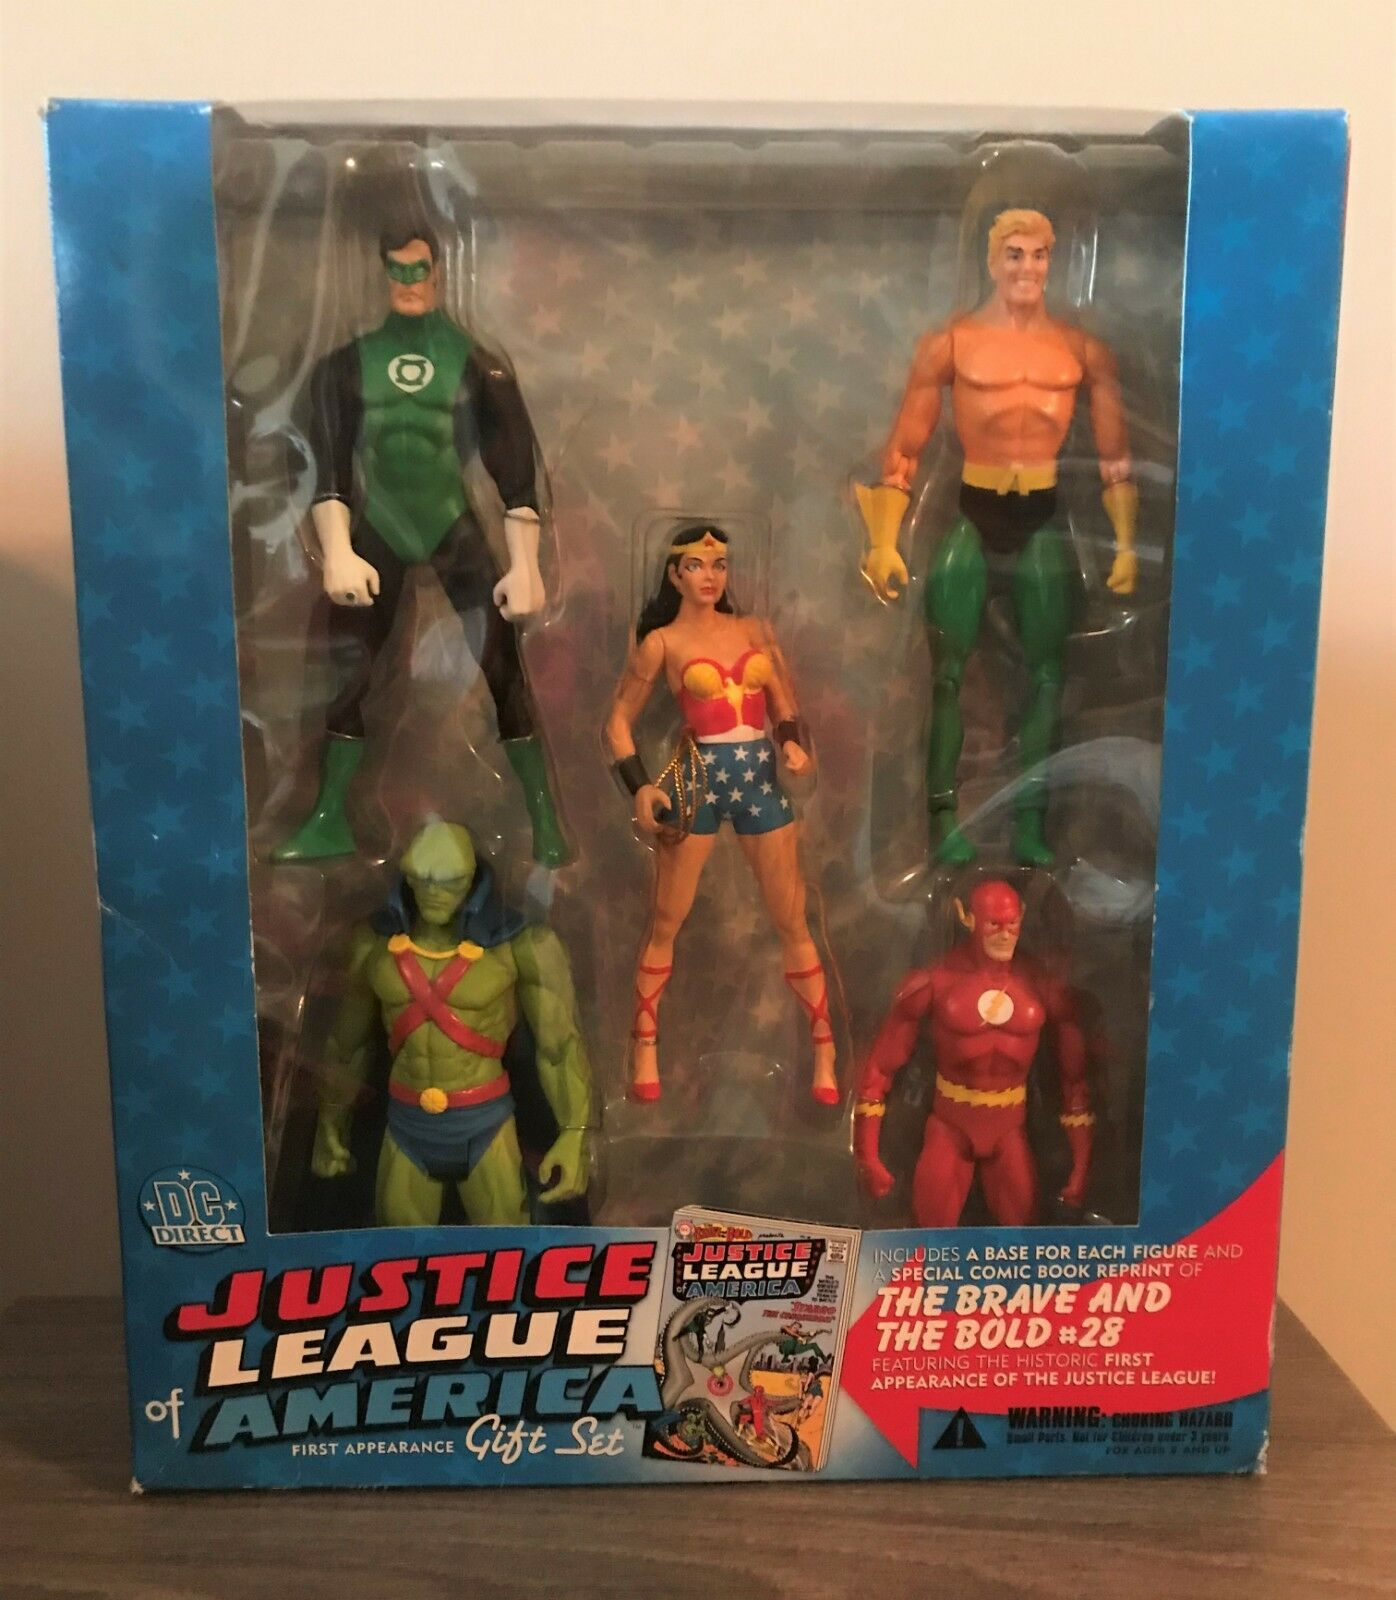 DC Direct Justice League of America First Appearance Gift Set